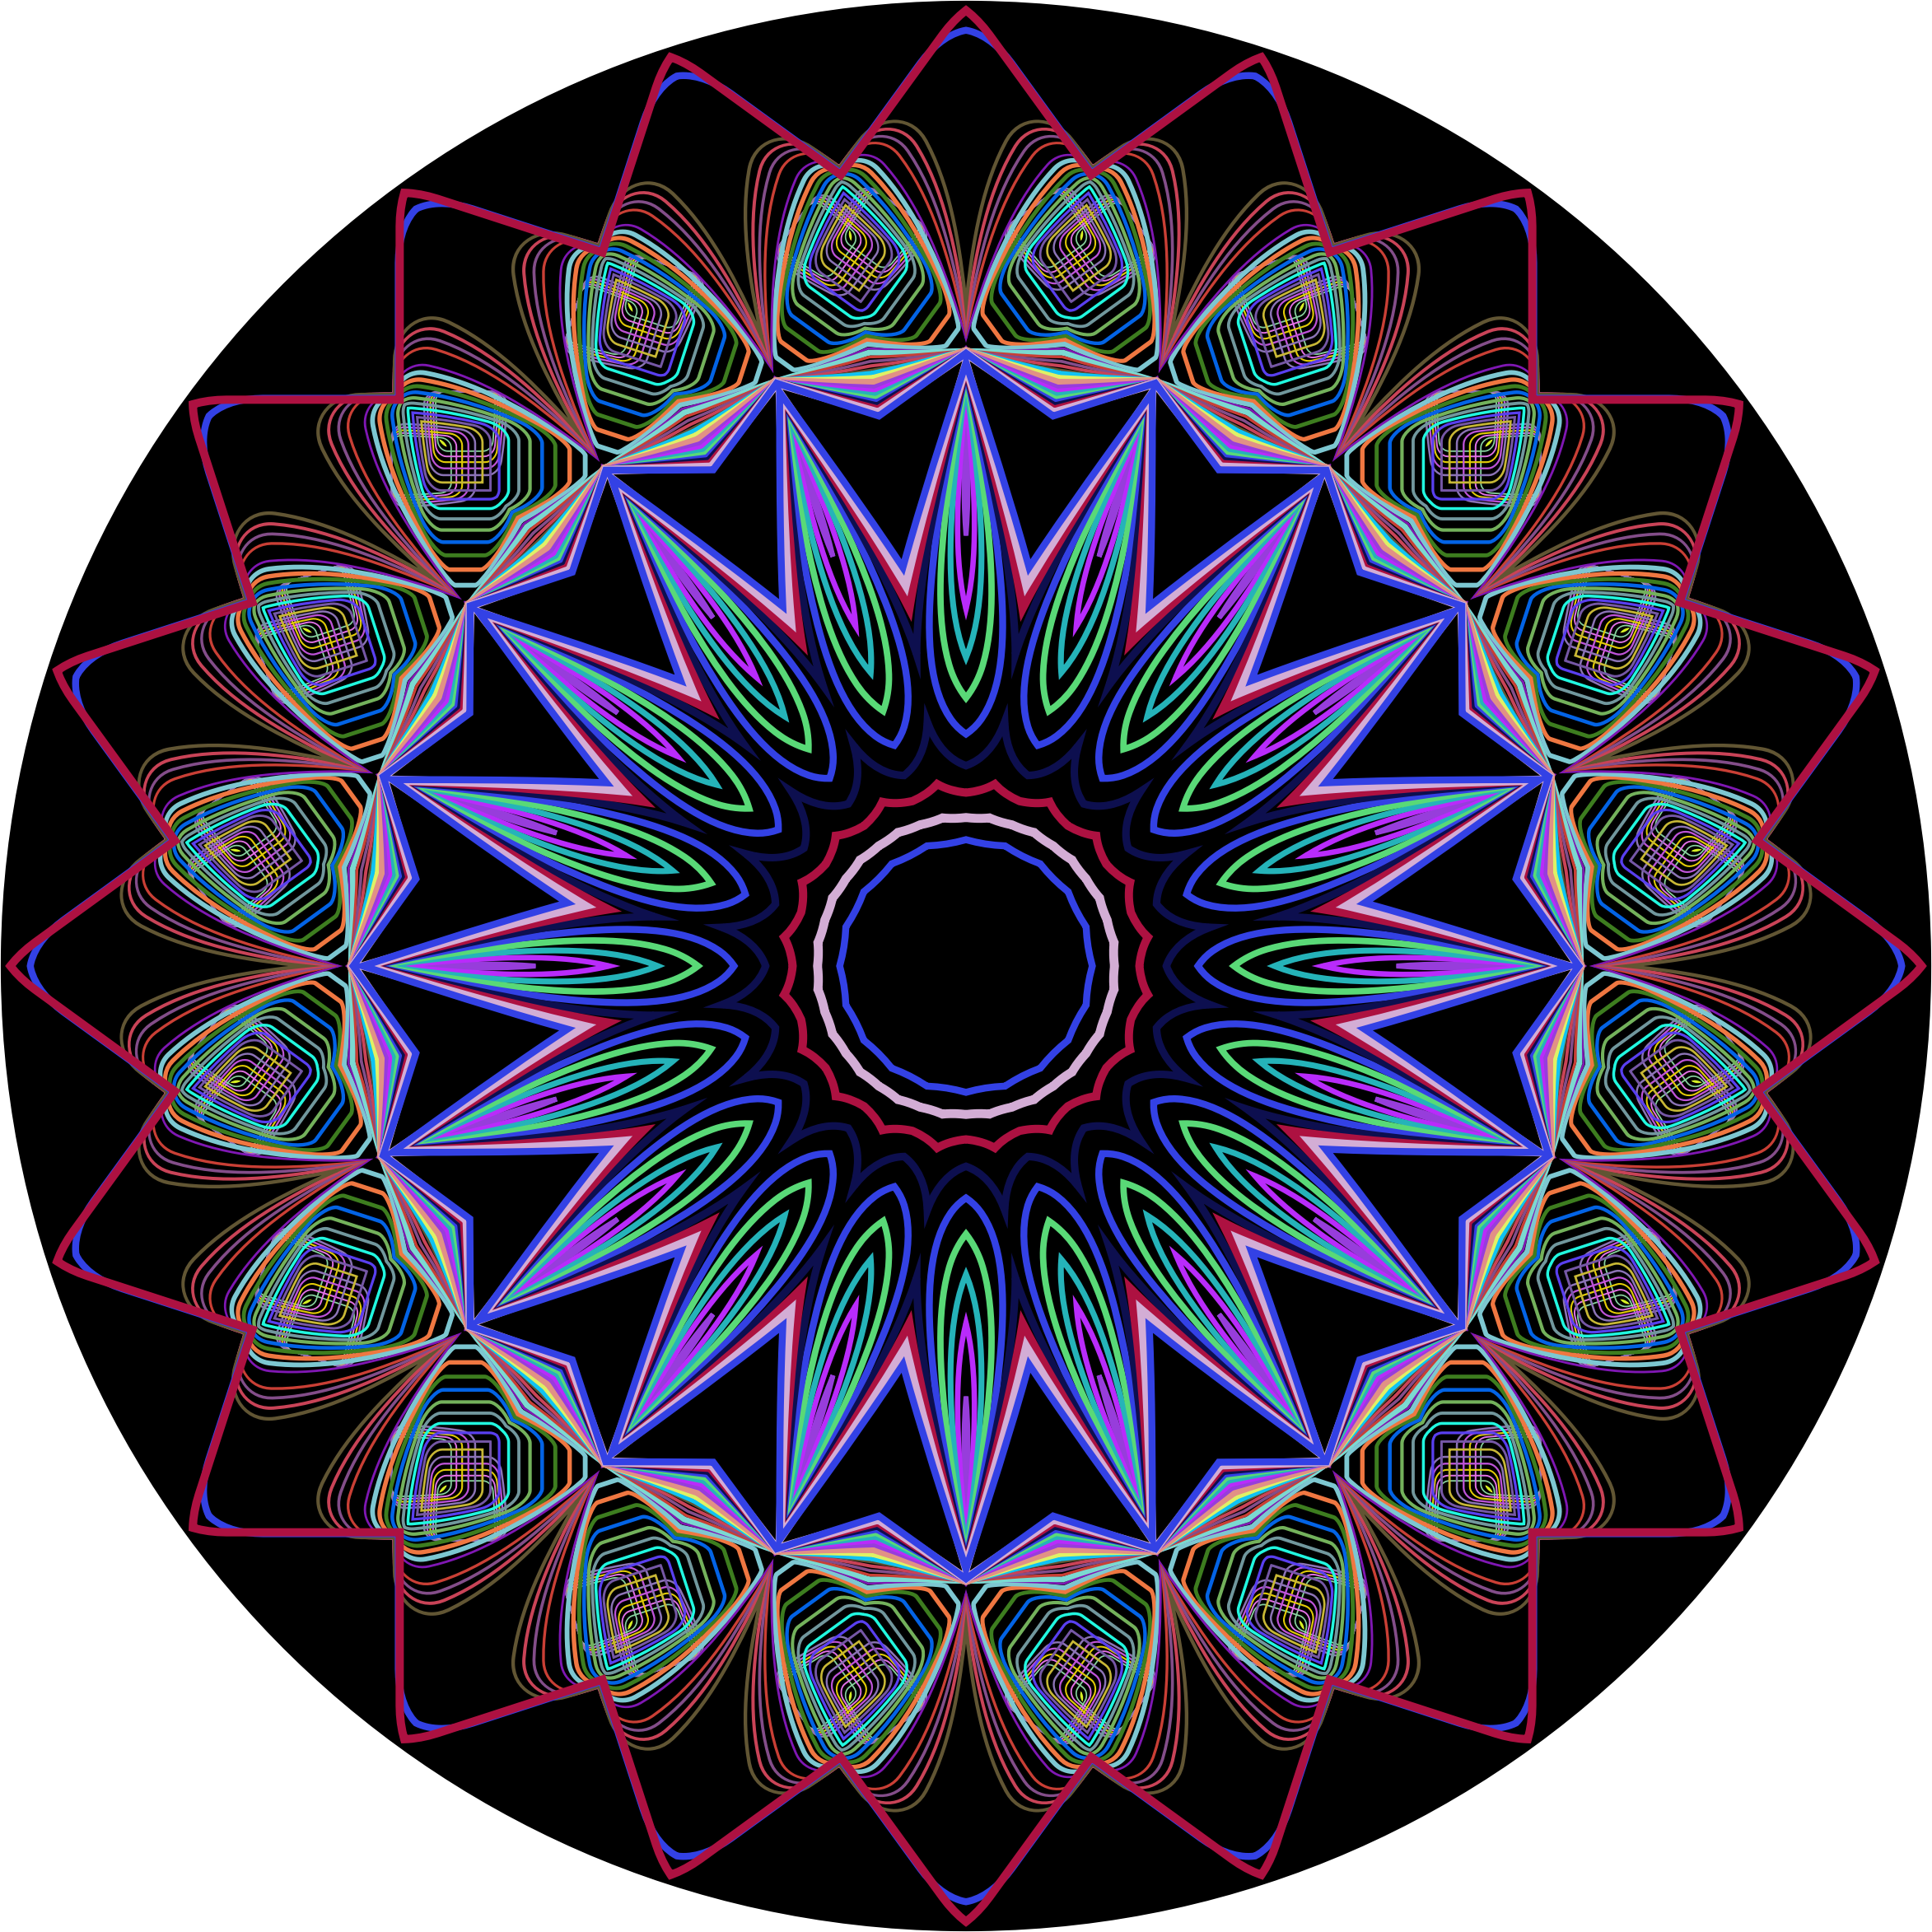 Prismatic Mandala Line Art Design 3 by GDJ